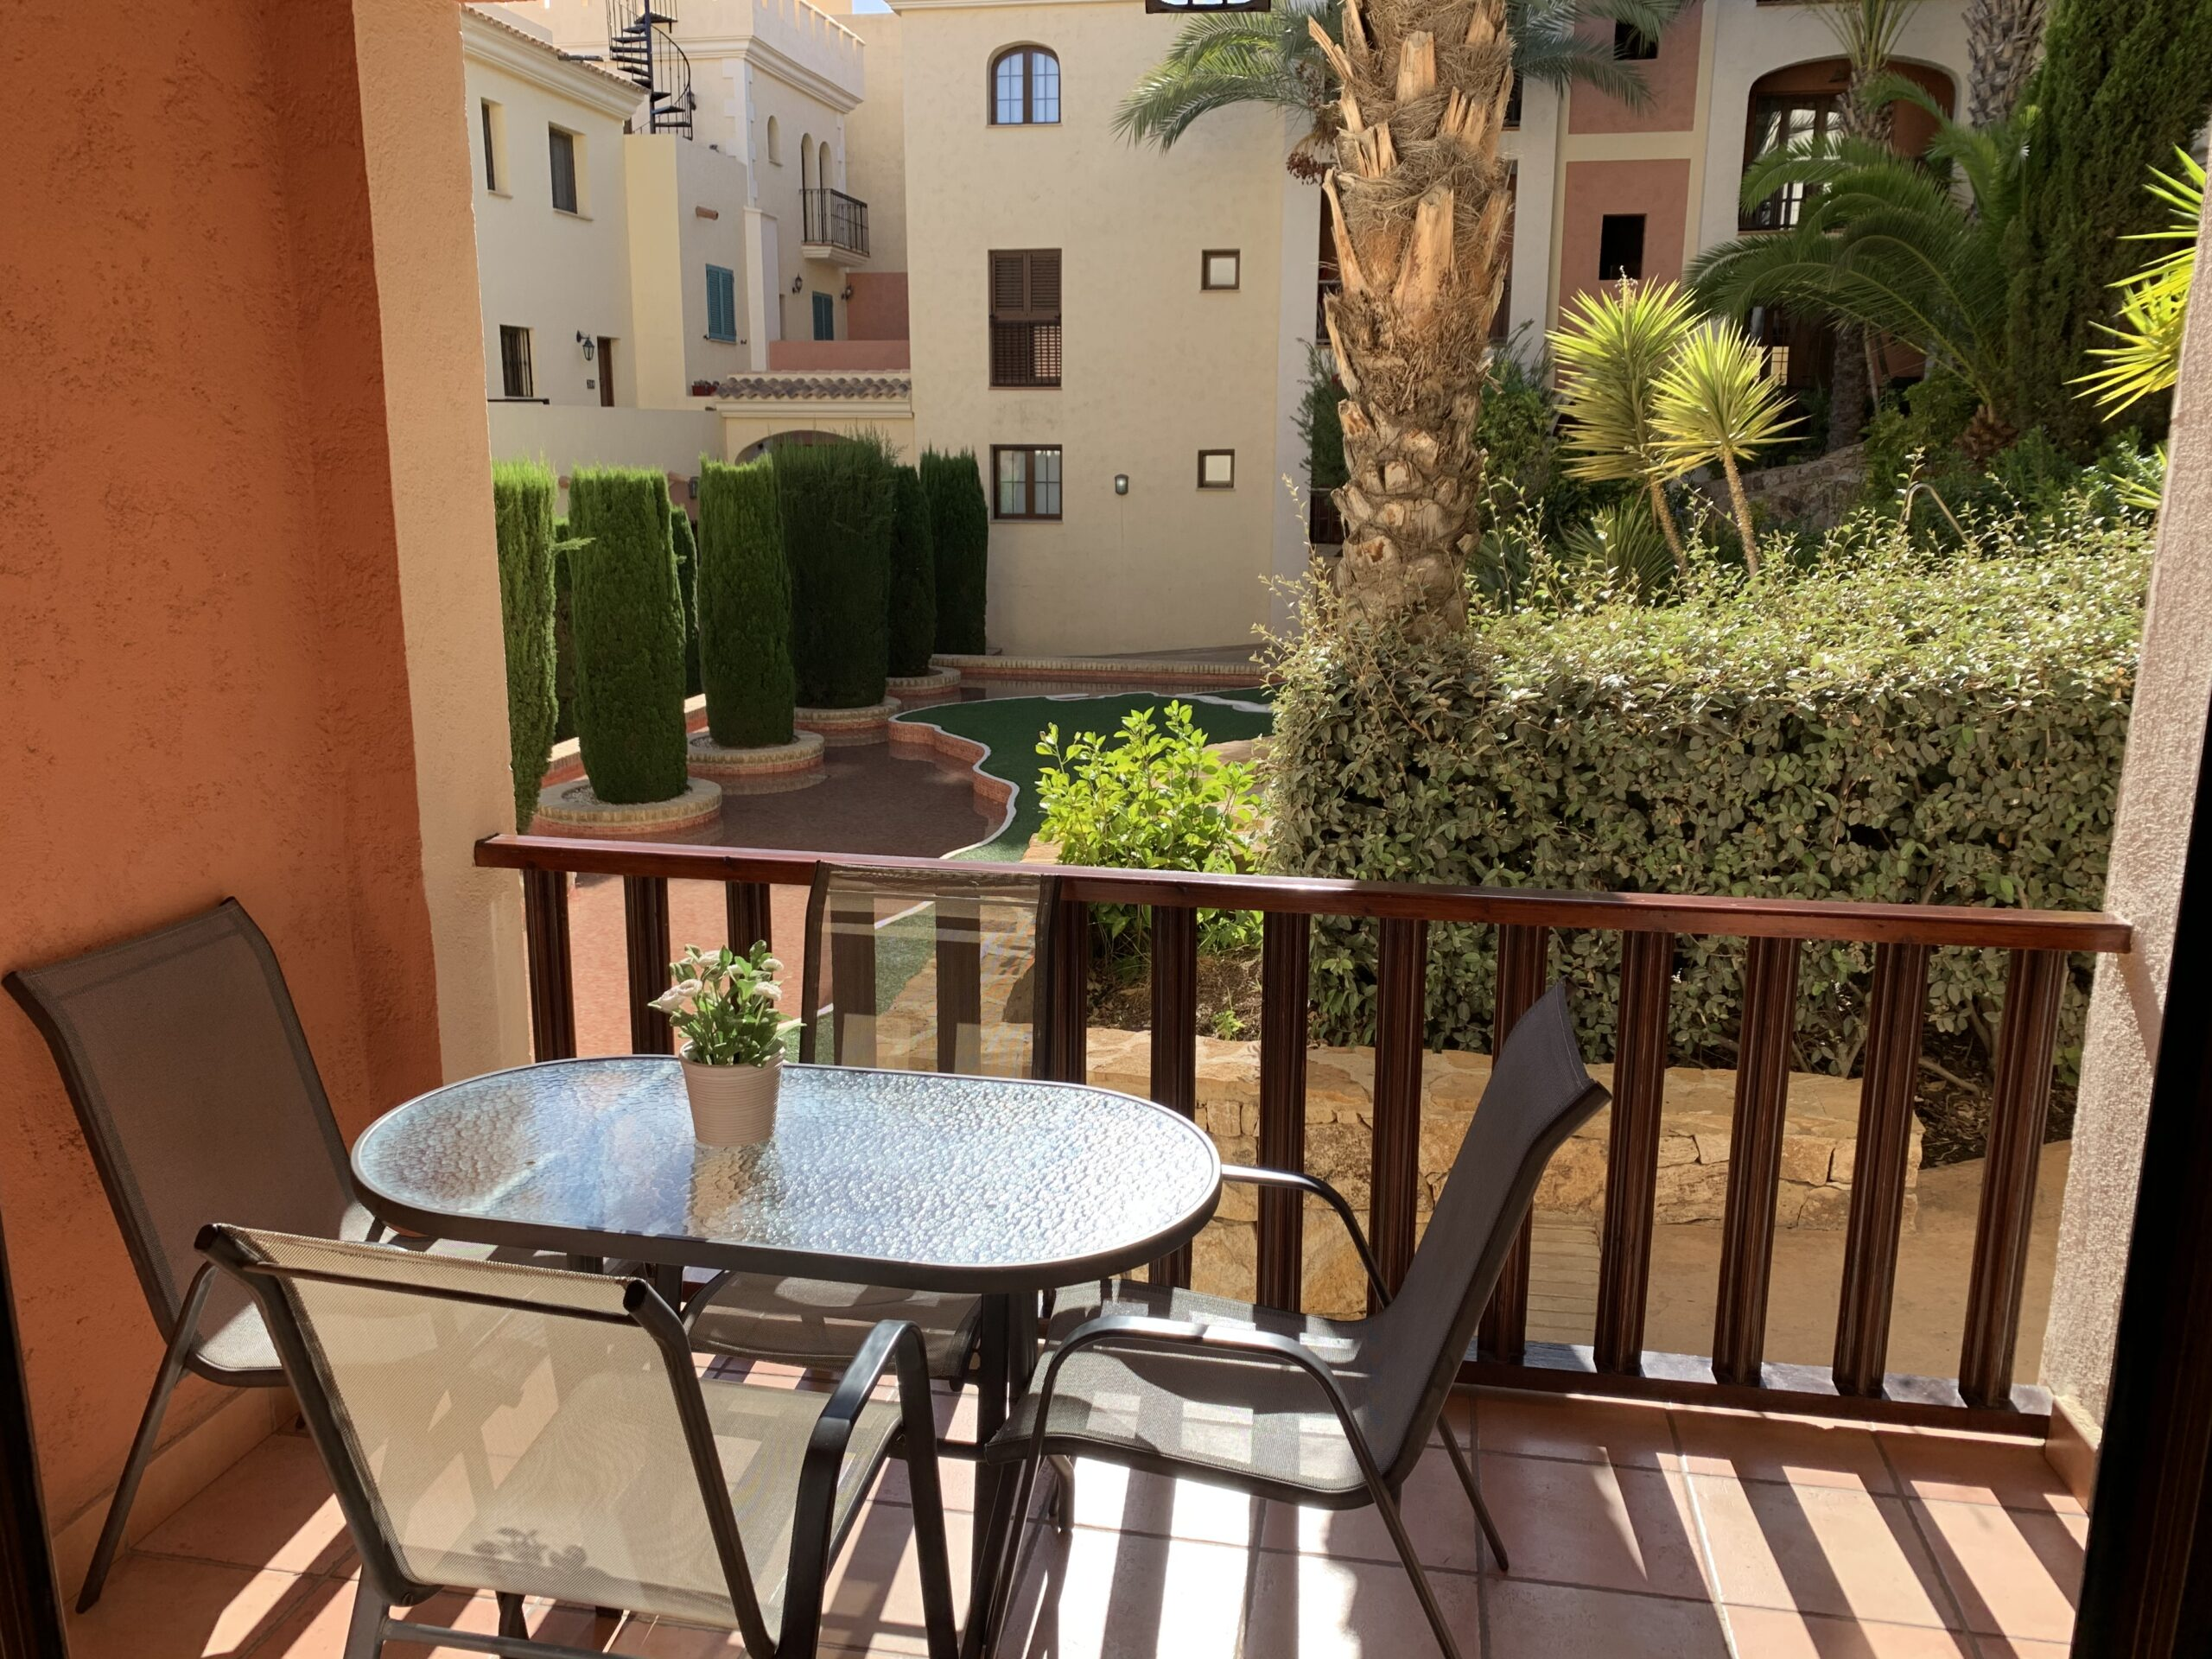 Appartement te koop in Villaricos (Spanje, Costa de Almeria)